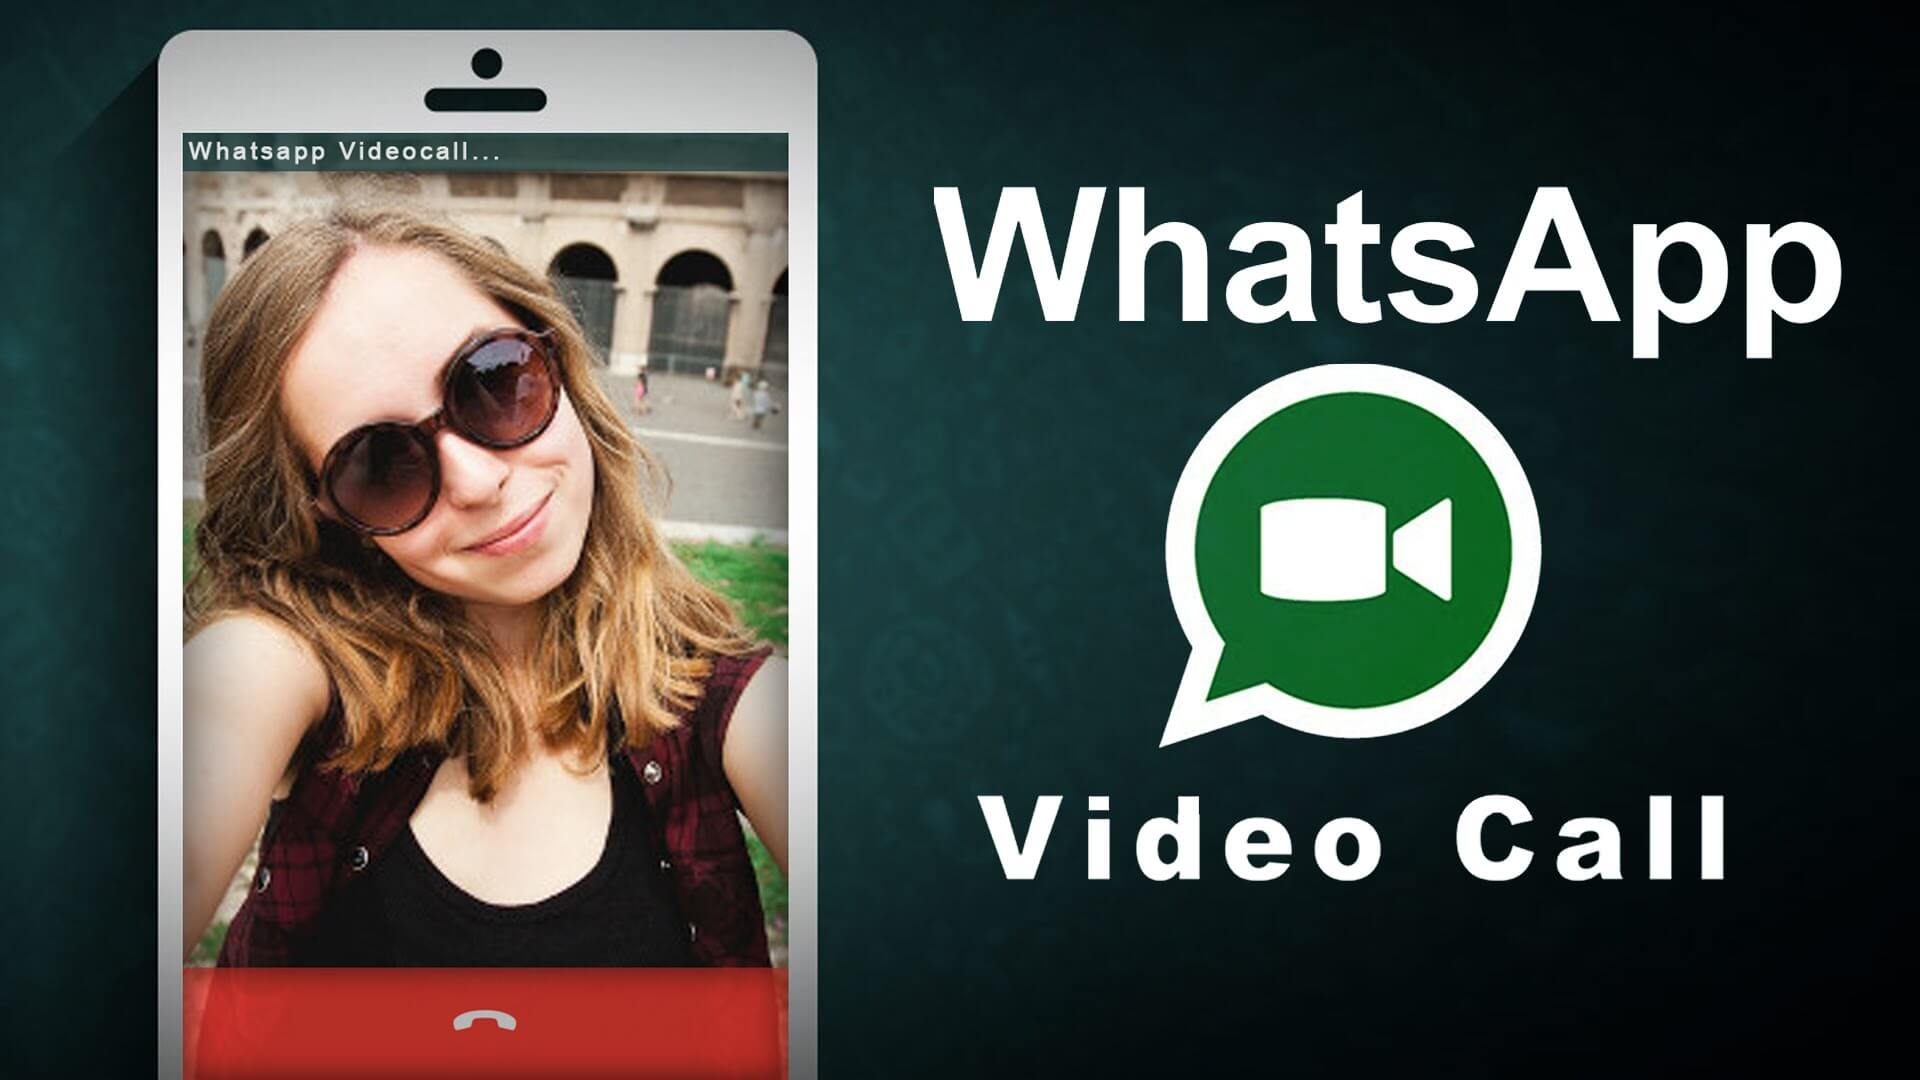 Download WhatsApp Video Call APK for Android | Xiaomi Advices